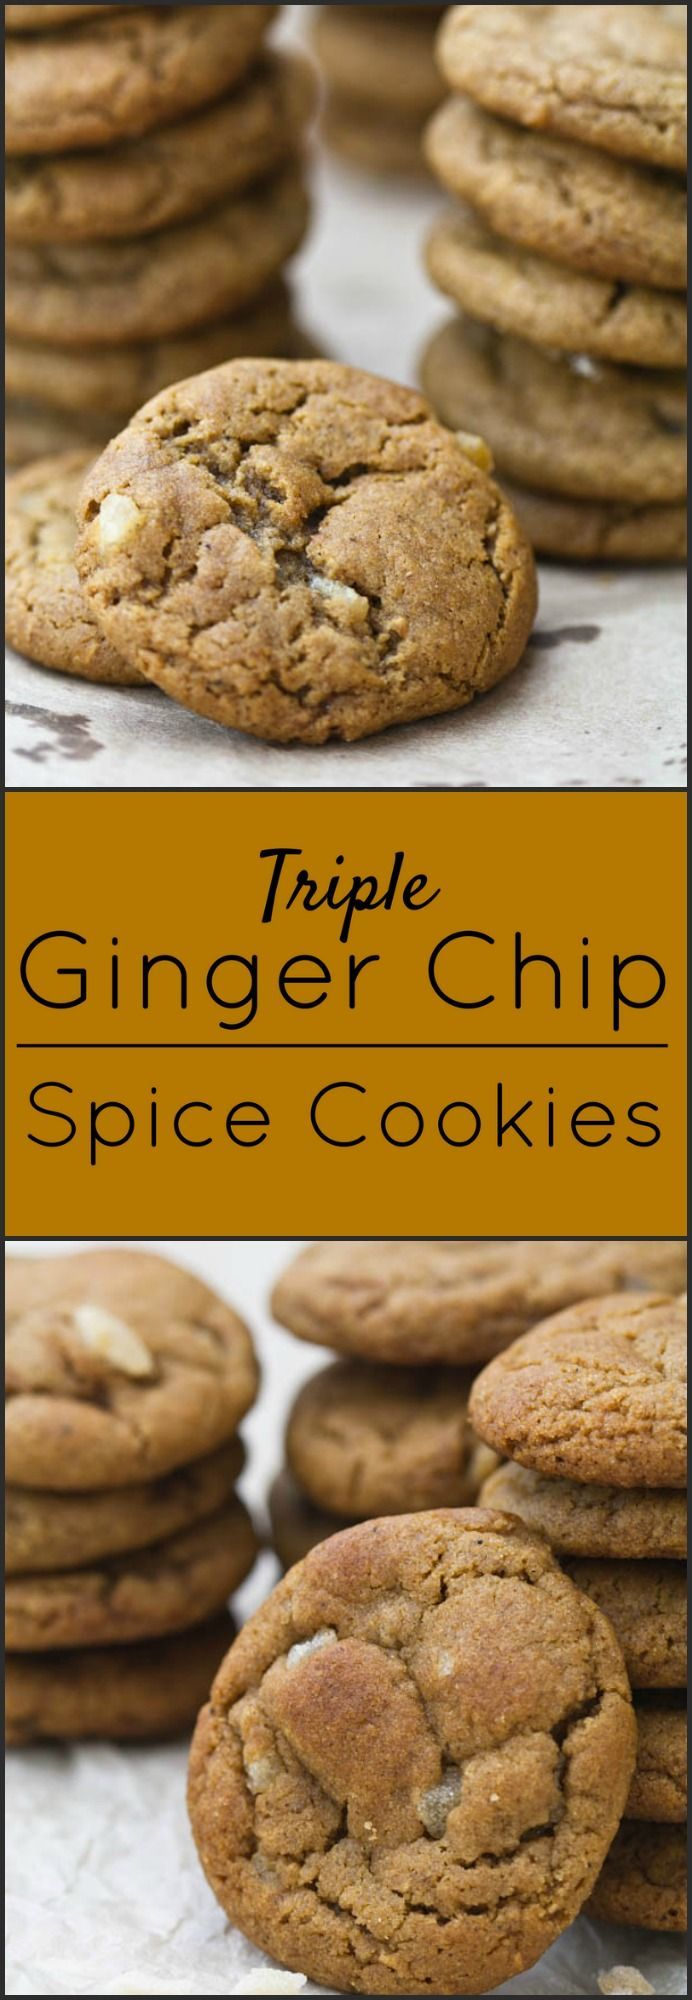 Triple Ginger Chip Spice Cookies.